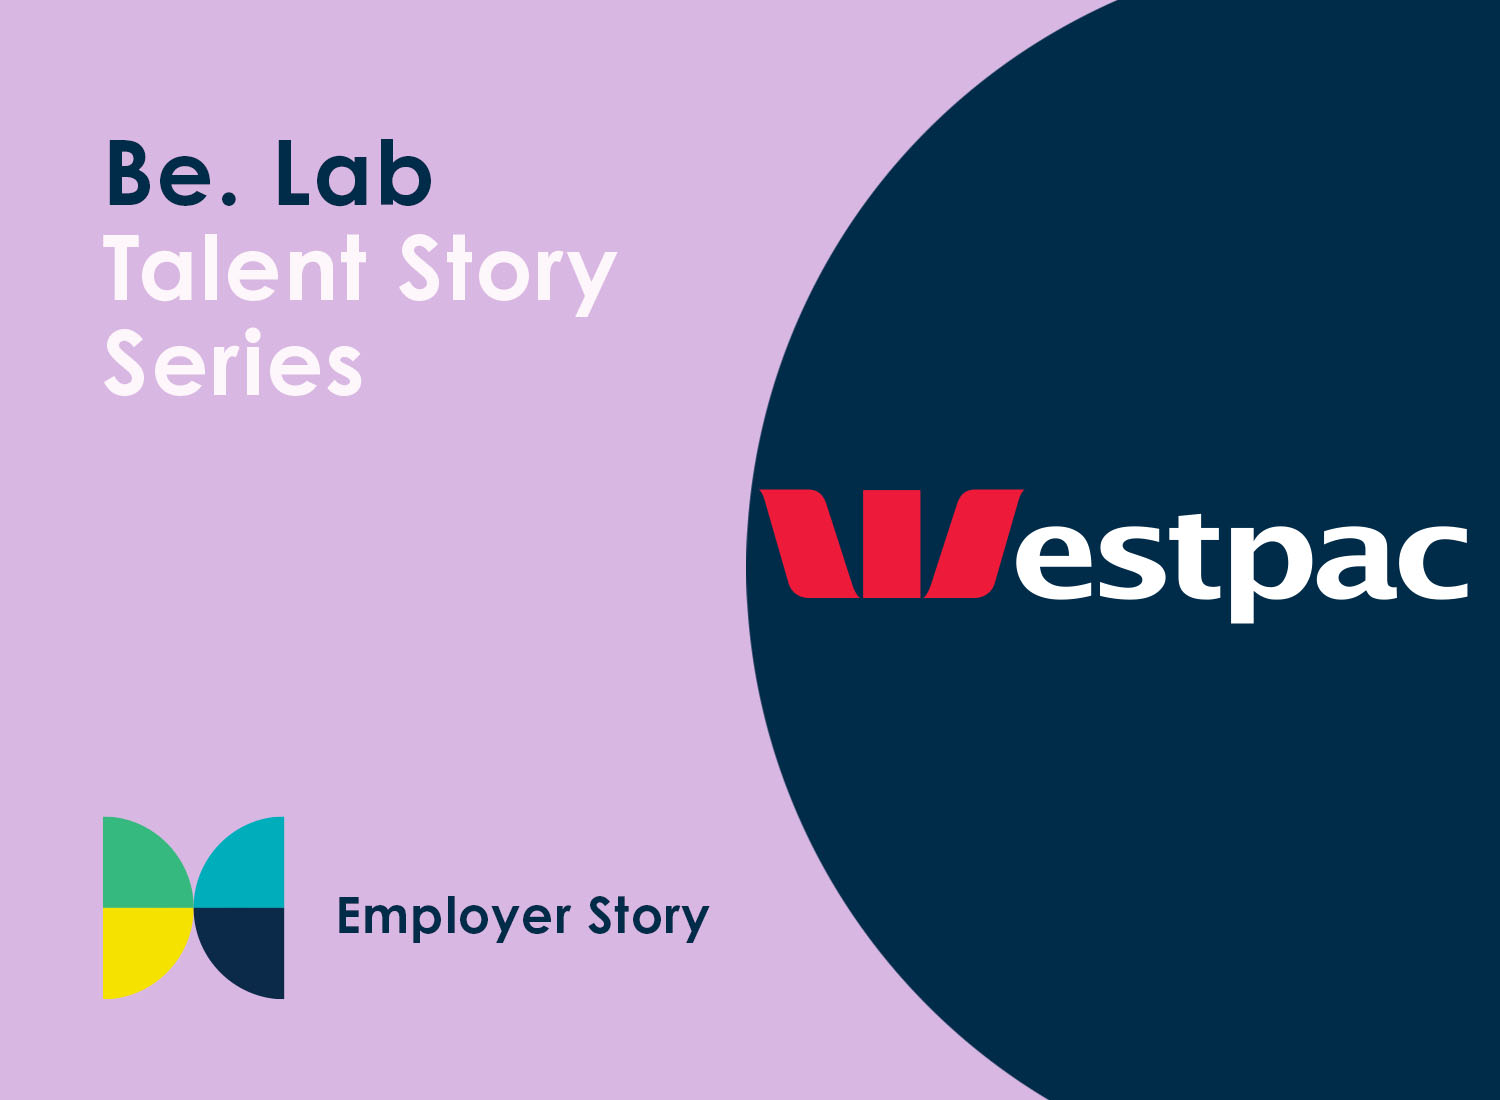 The words Be. Lab Talent Story Series: Employer story on a lilac background, with the Westpac logo on a navy background.